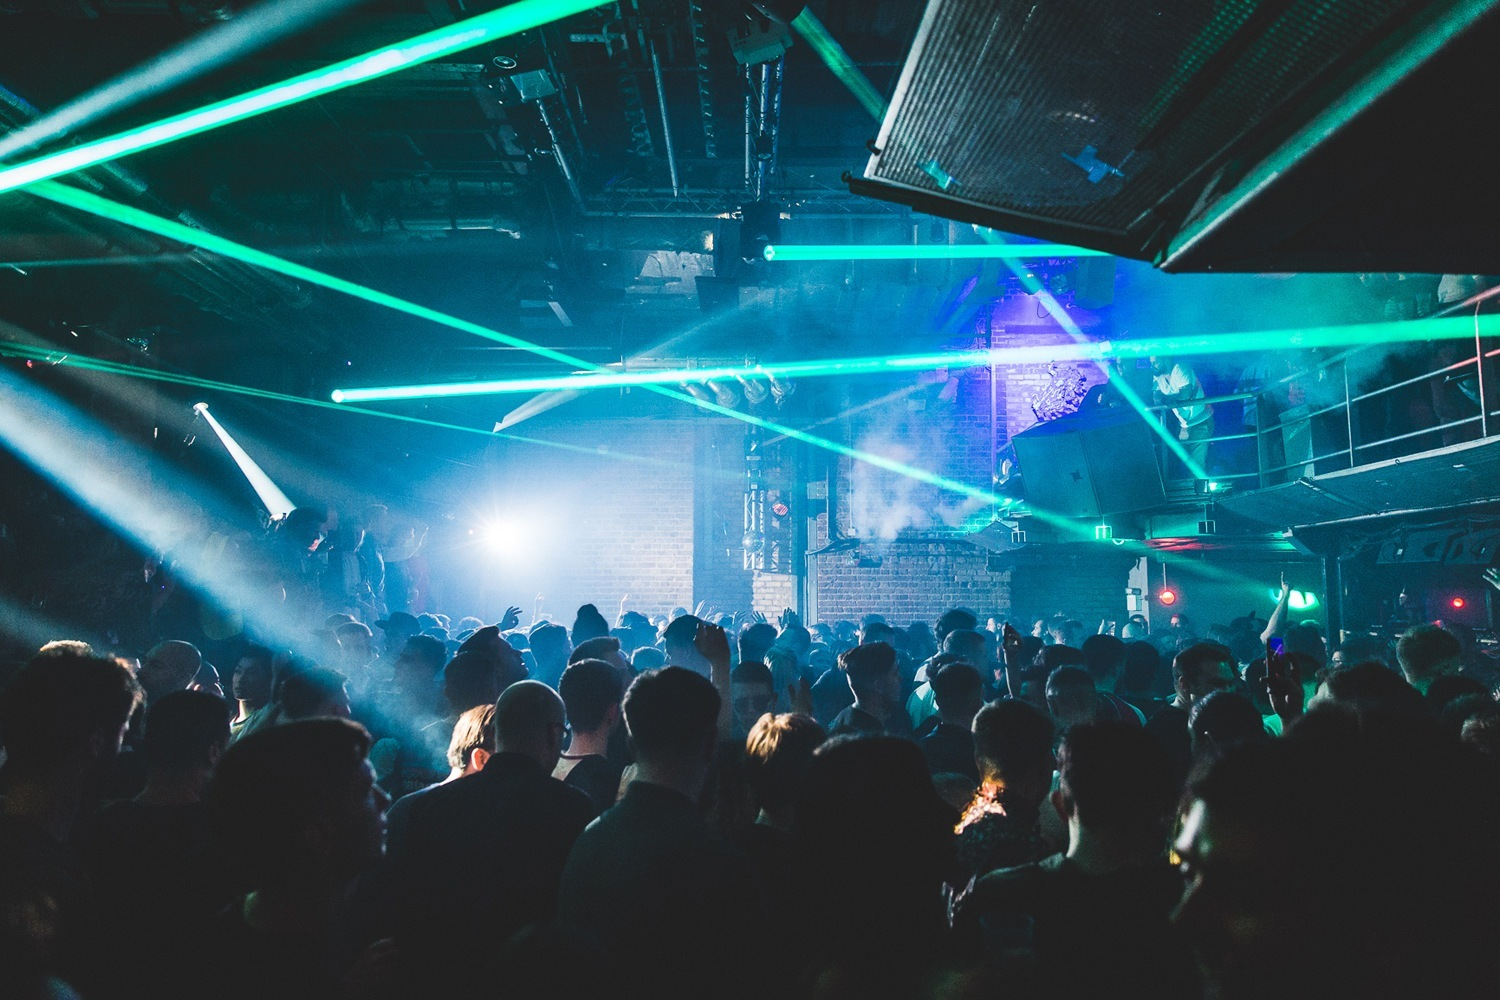 Fabric, nightlife, clubs, time out, london